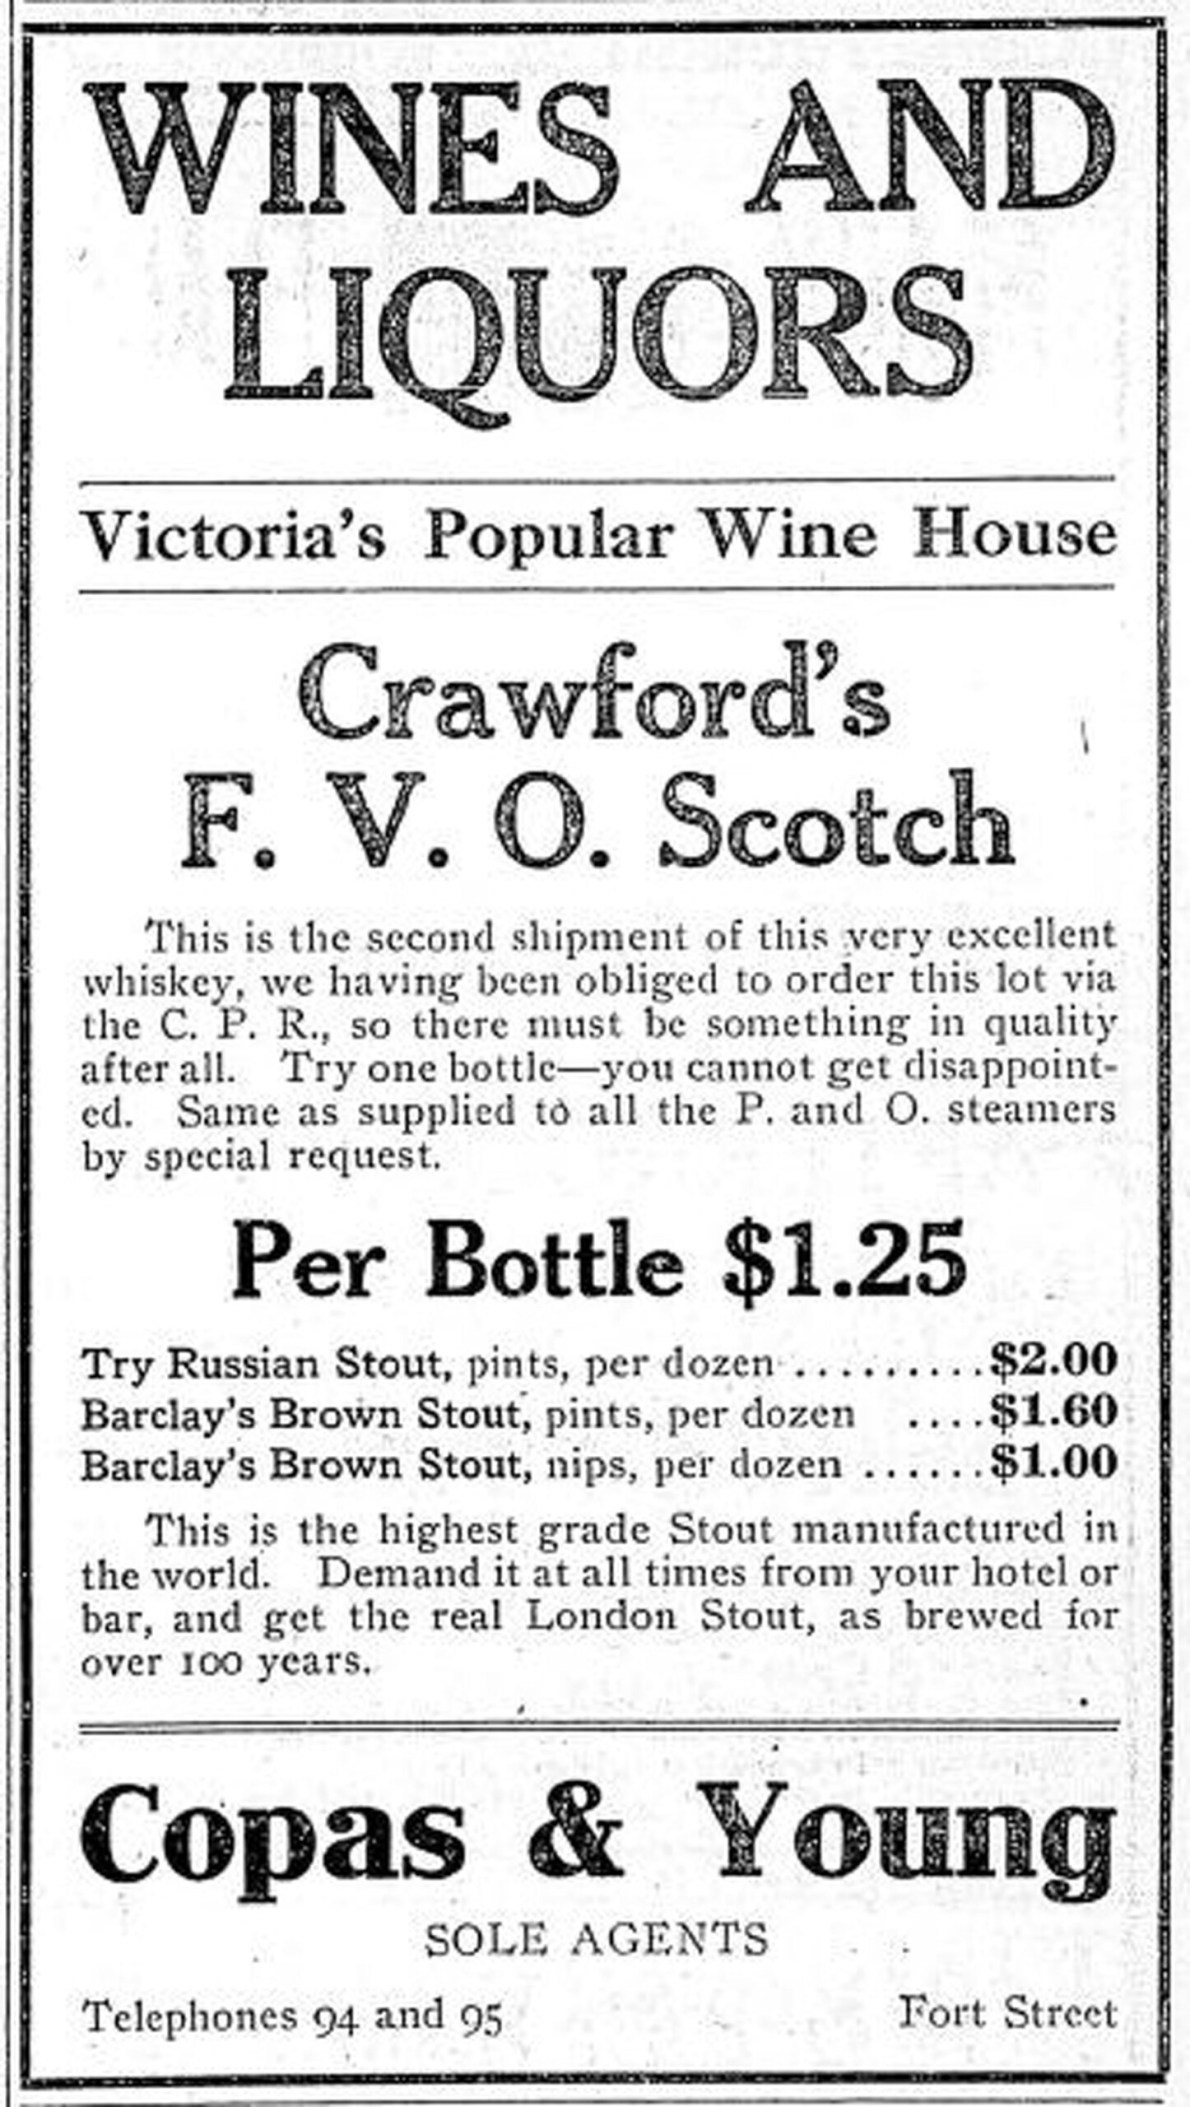 Copas & Young Anti-Combine Grocers, liquor advertisement with prices, 1910. Copas & Young was in the Fell Building at the intersection of Fort Street and Broad Street (Victoria Online Sightseeing collection)